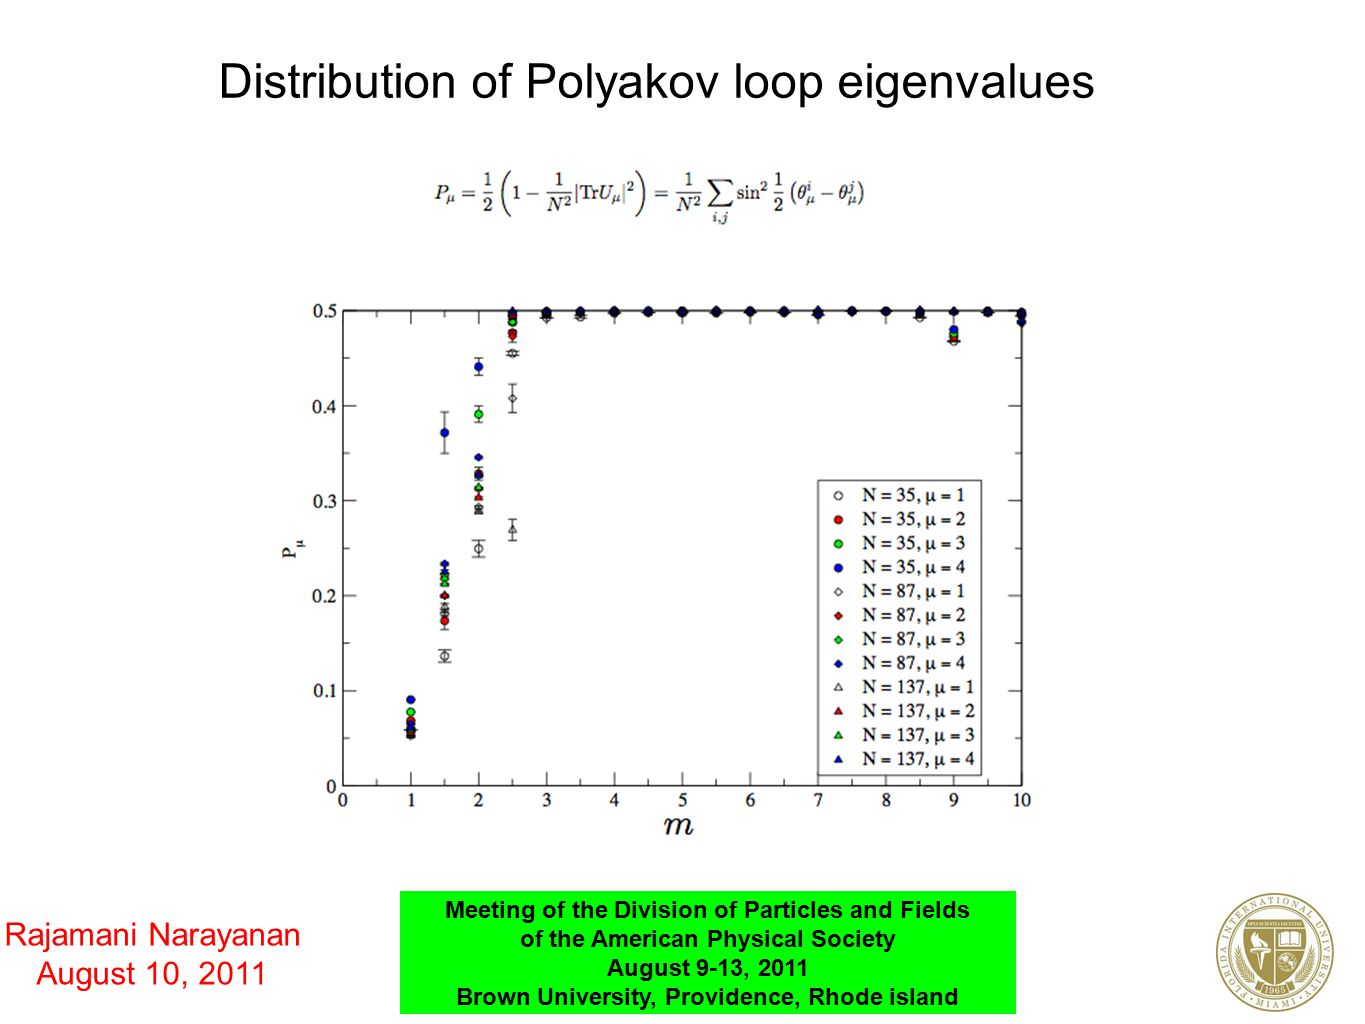 Distribution of Polyakov loop eigenvalues Rajamani Narayanan August 10, 2011 Meeting of the Division of Particles and Fields of the American Physical Society August 9-13, 2011 Brown University, Providence, Rhode island